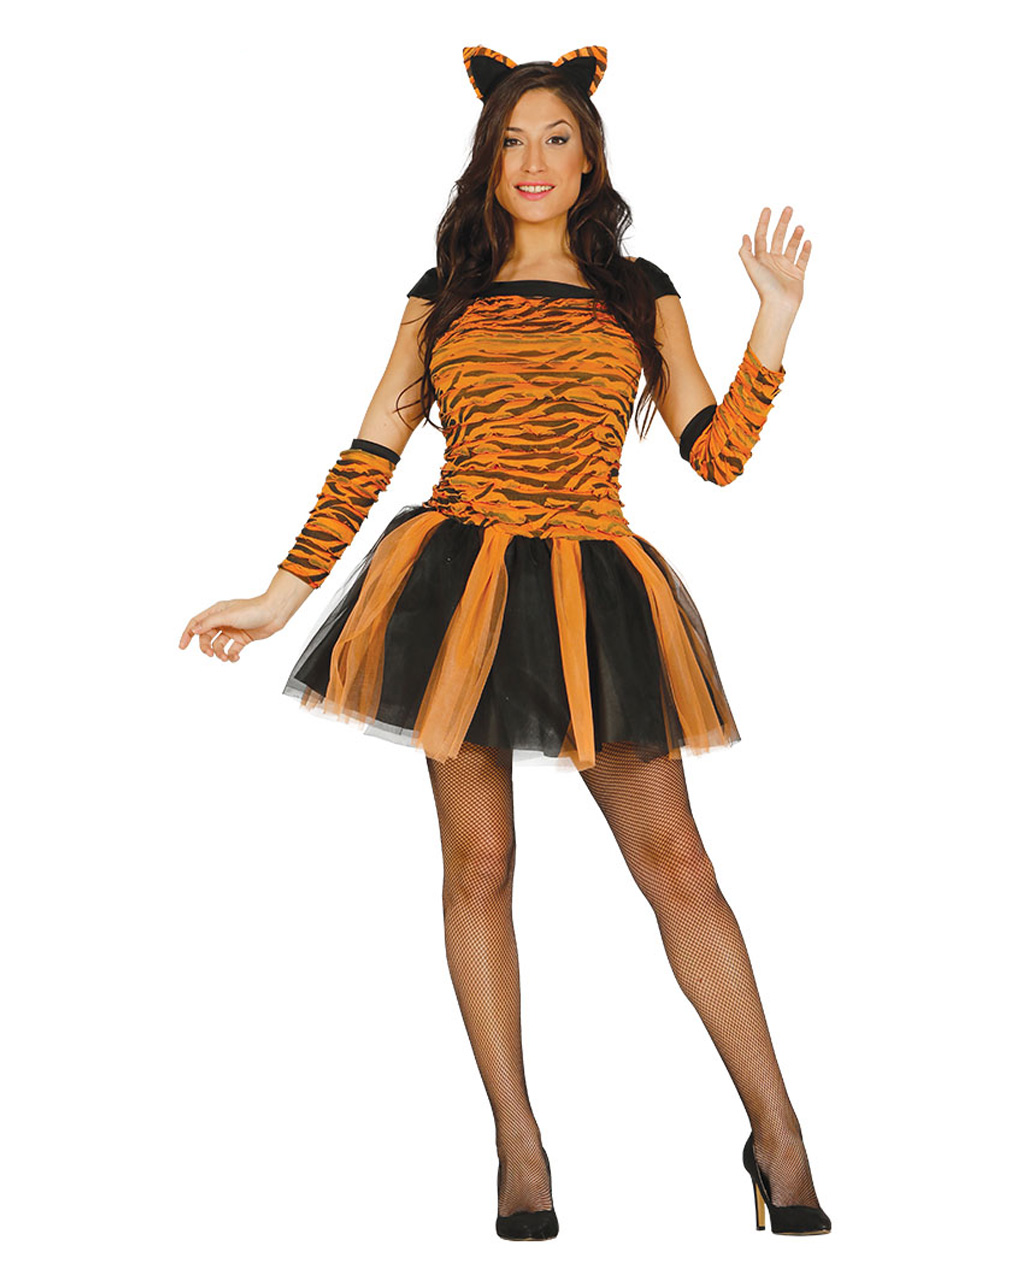 Tiger Costume With Accessories Sexy Carnival Costume Horror